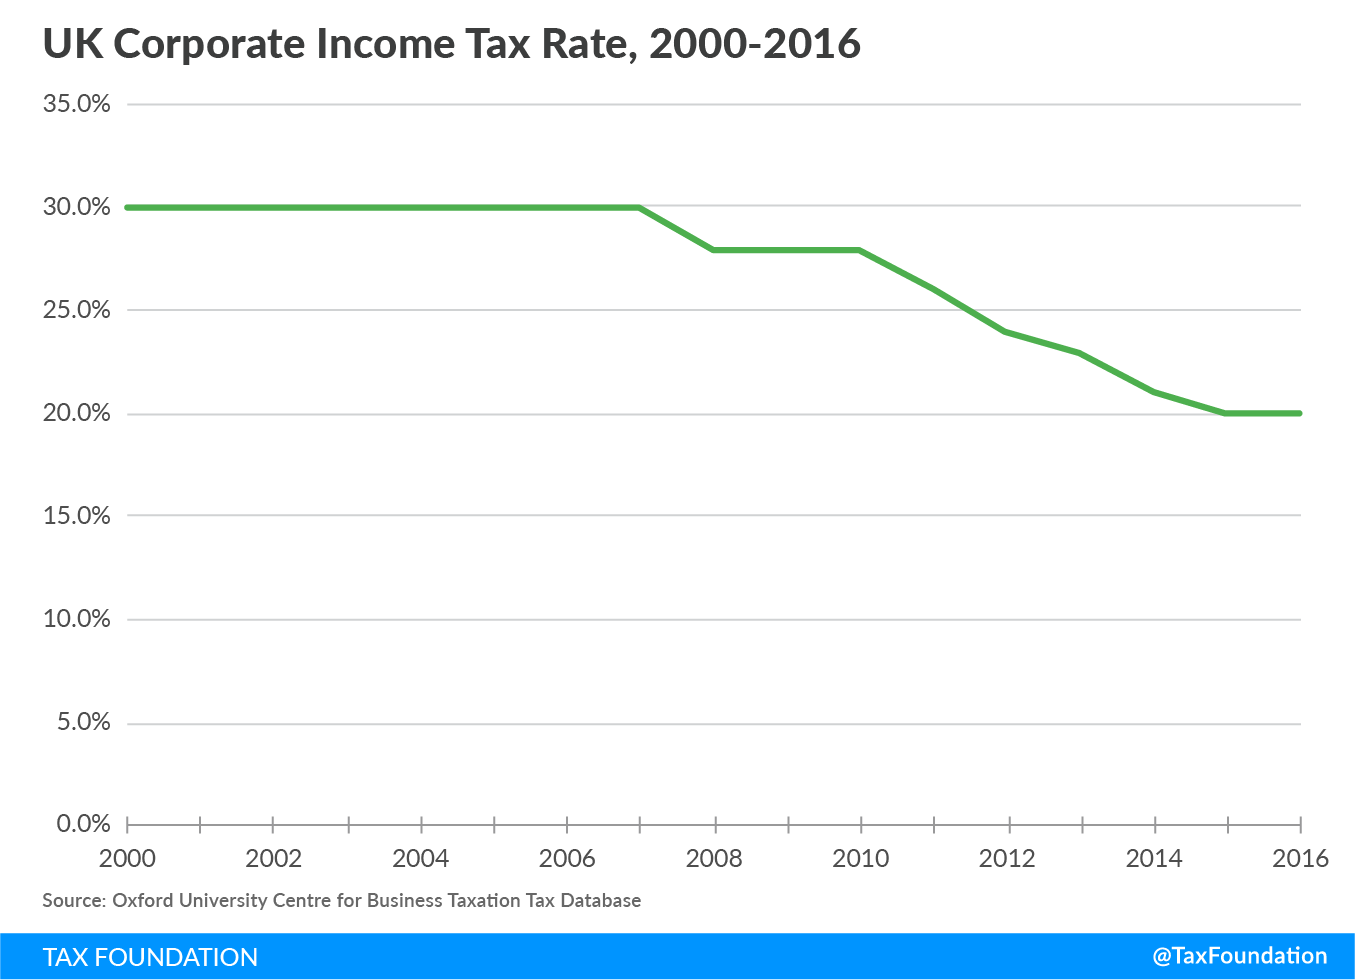 UK Corporate Income Tax Rate, 2000-2016